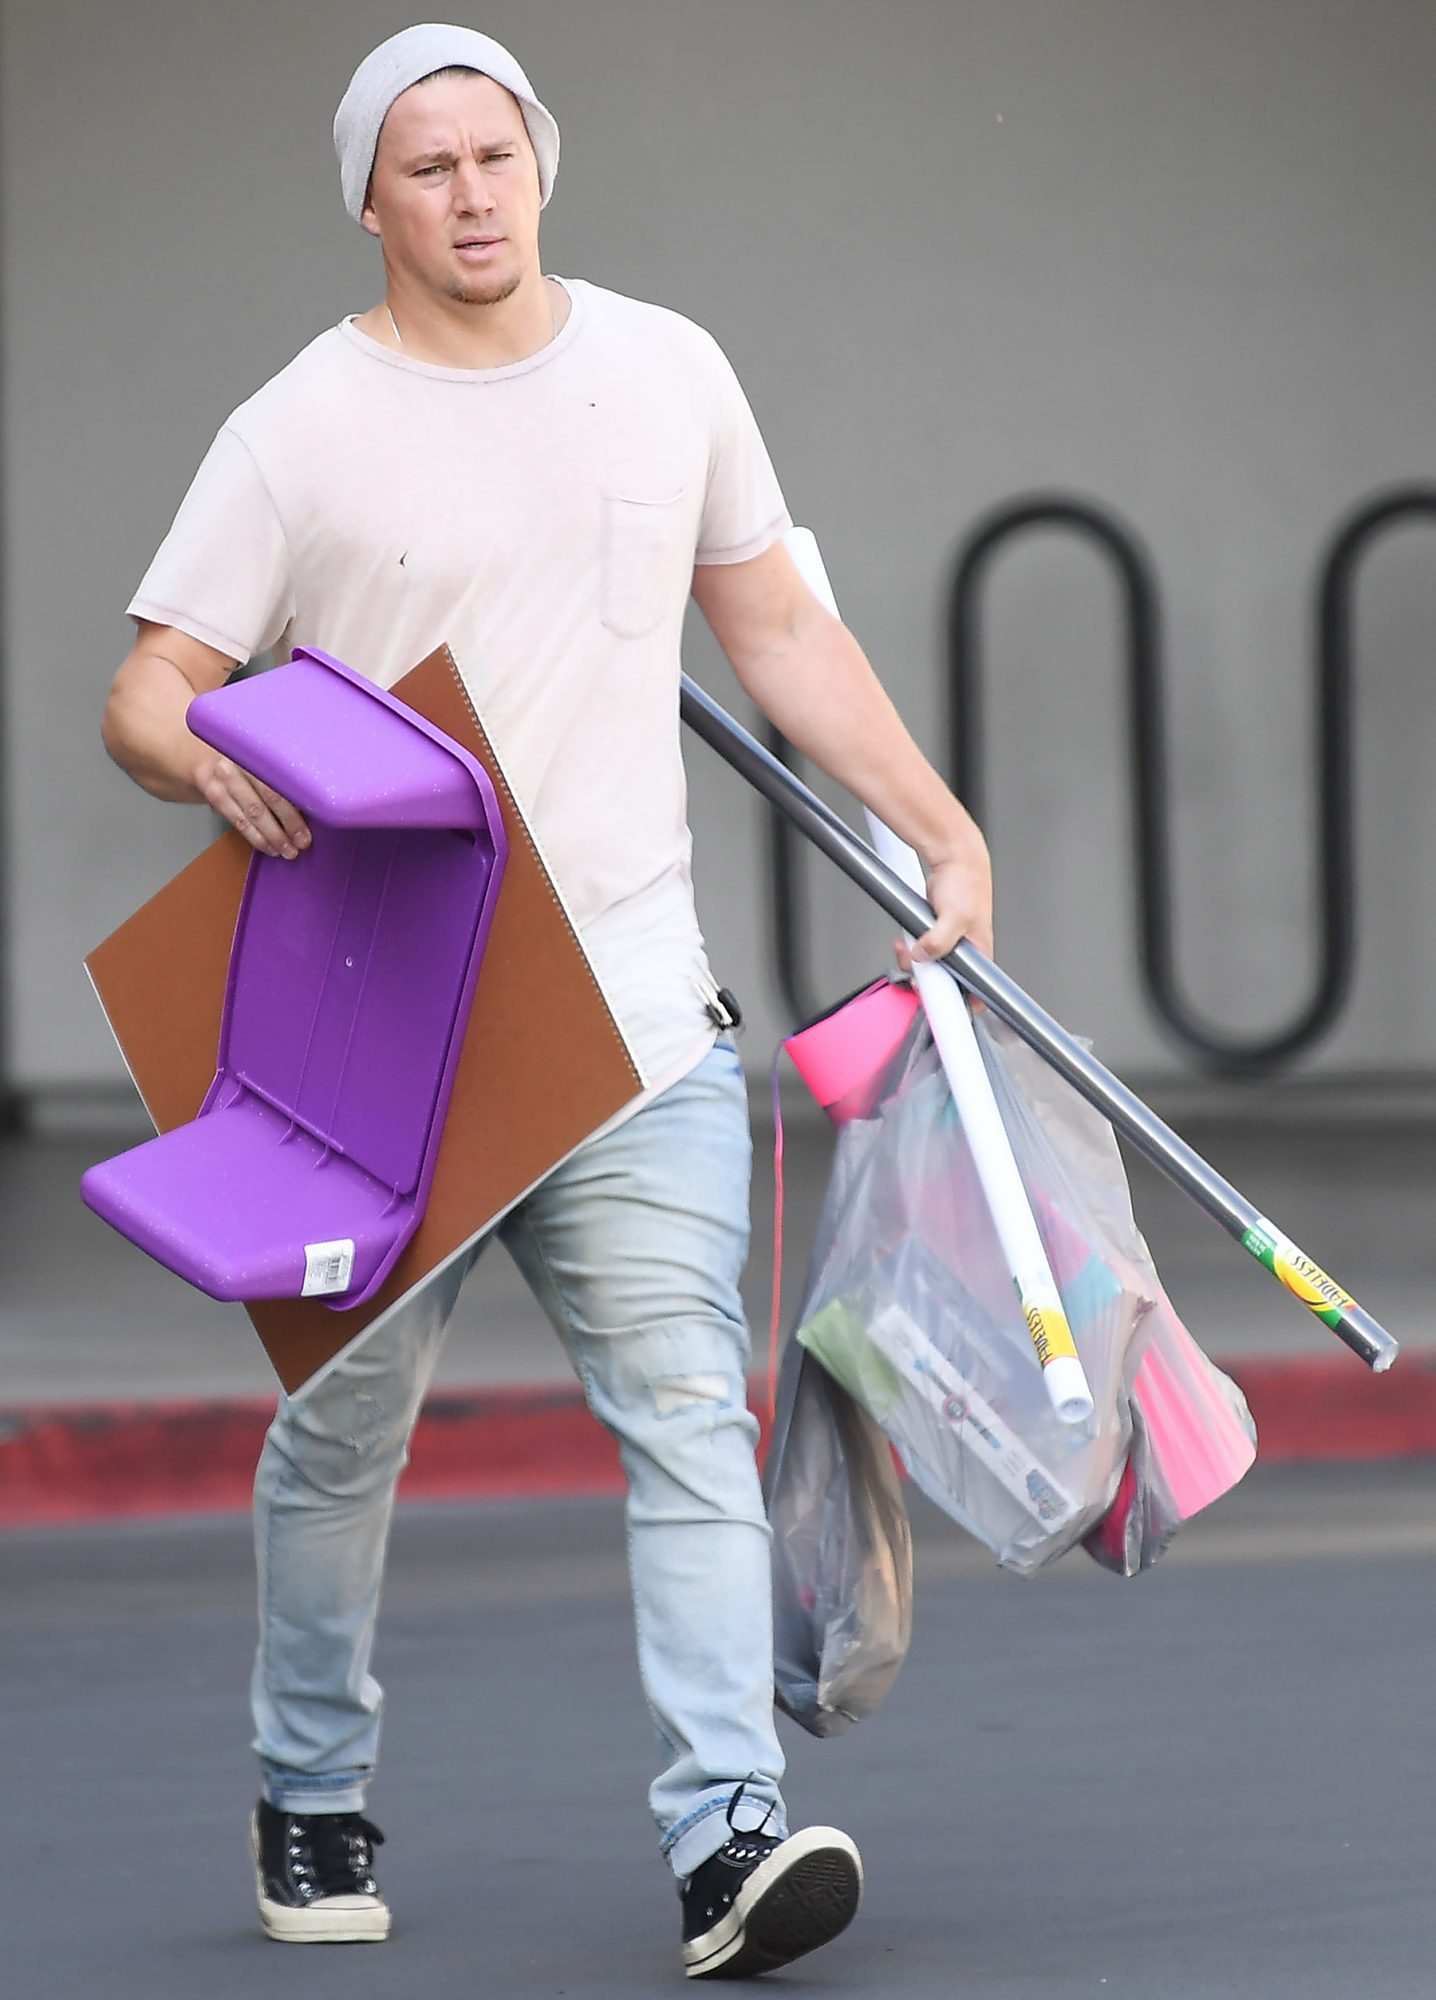 EXCLUSIVE: Channing Tatum carries out a handful of arts and crafts from Michaels arts and crafts store